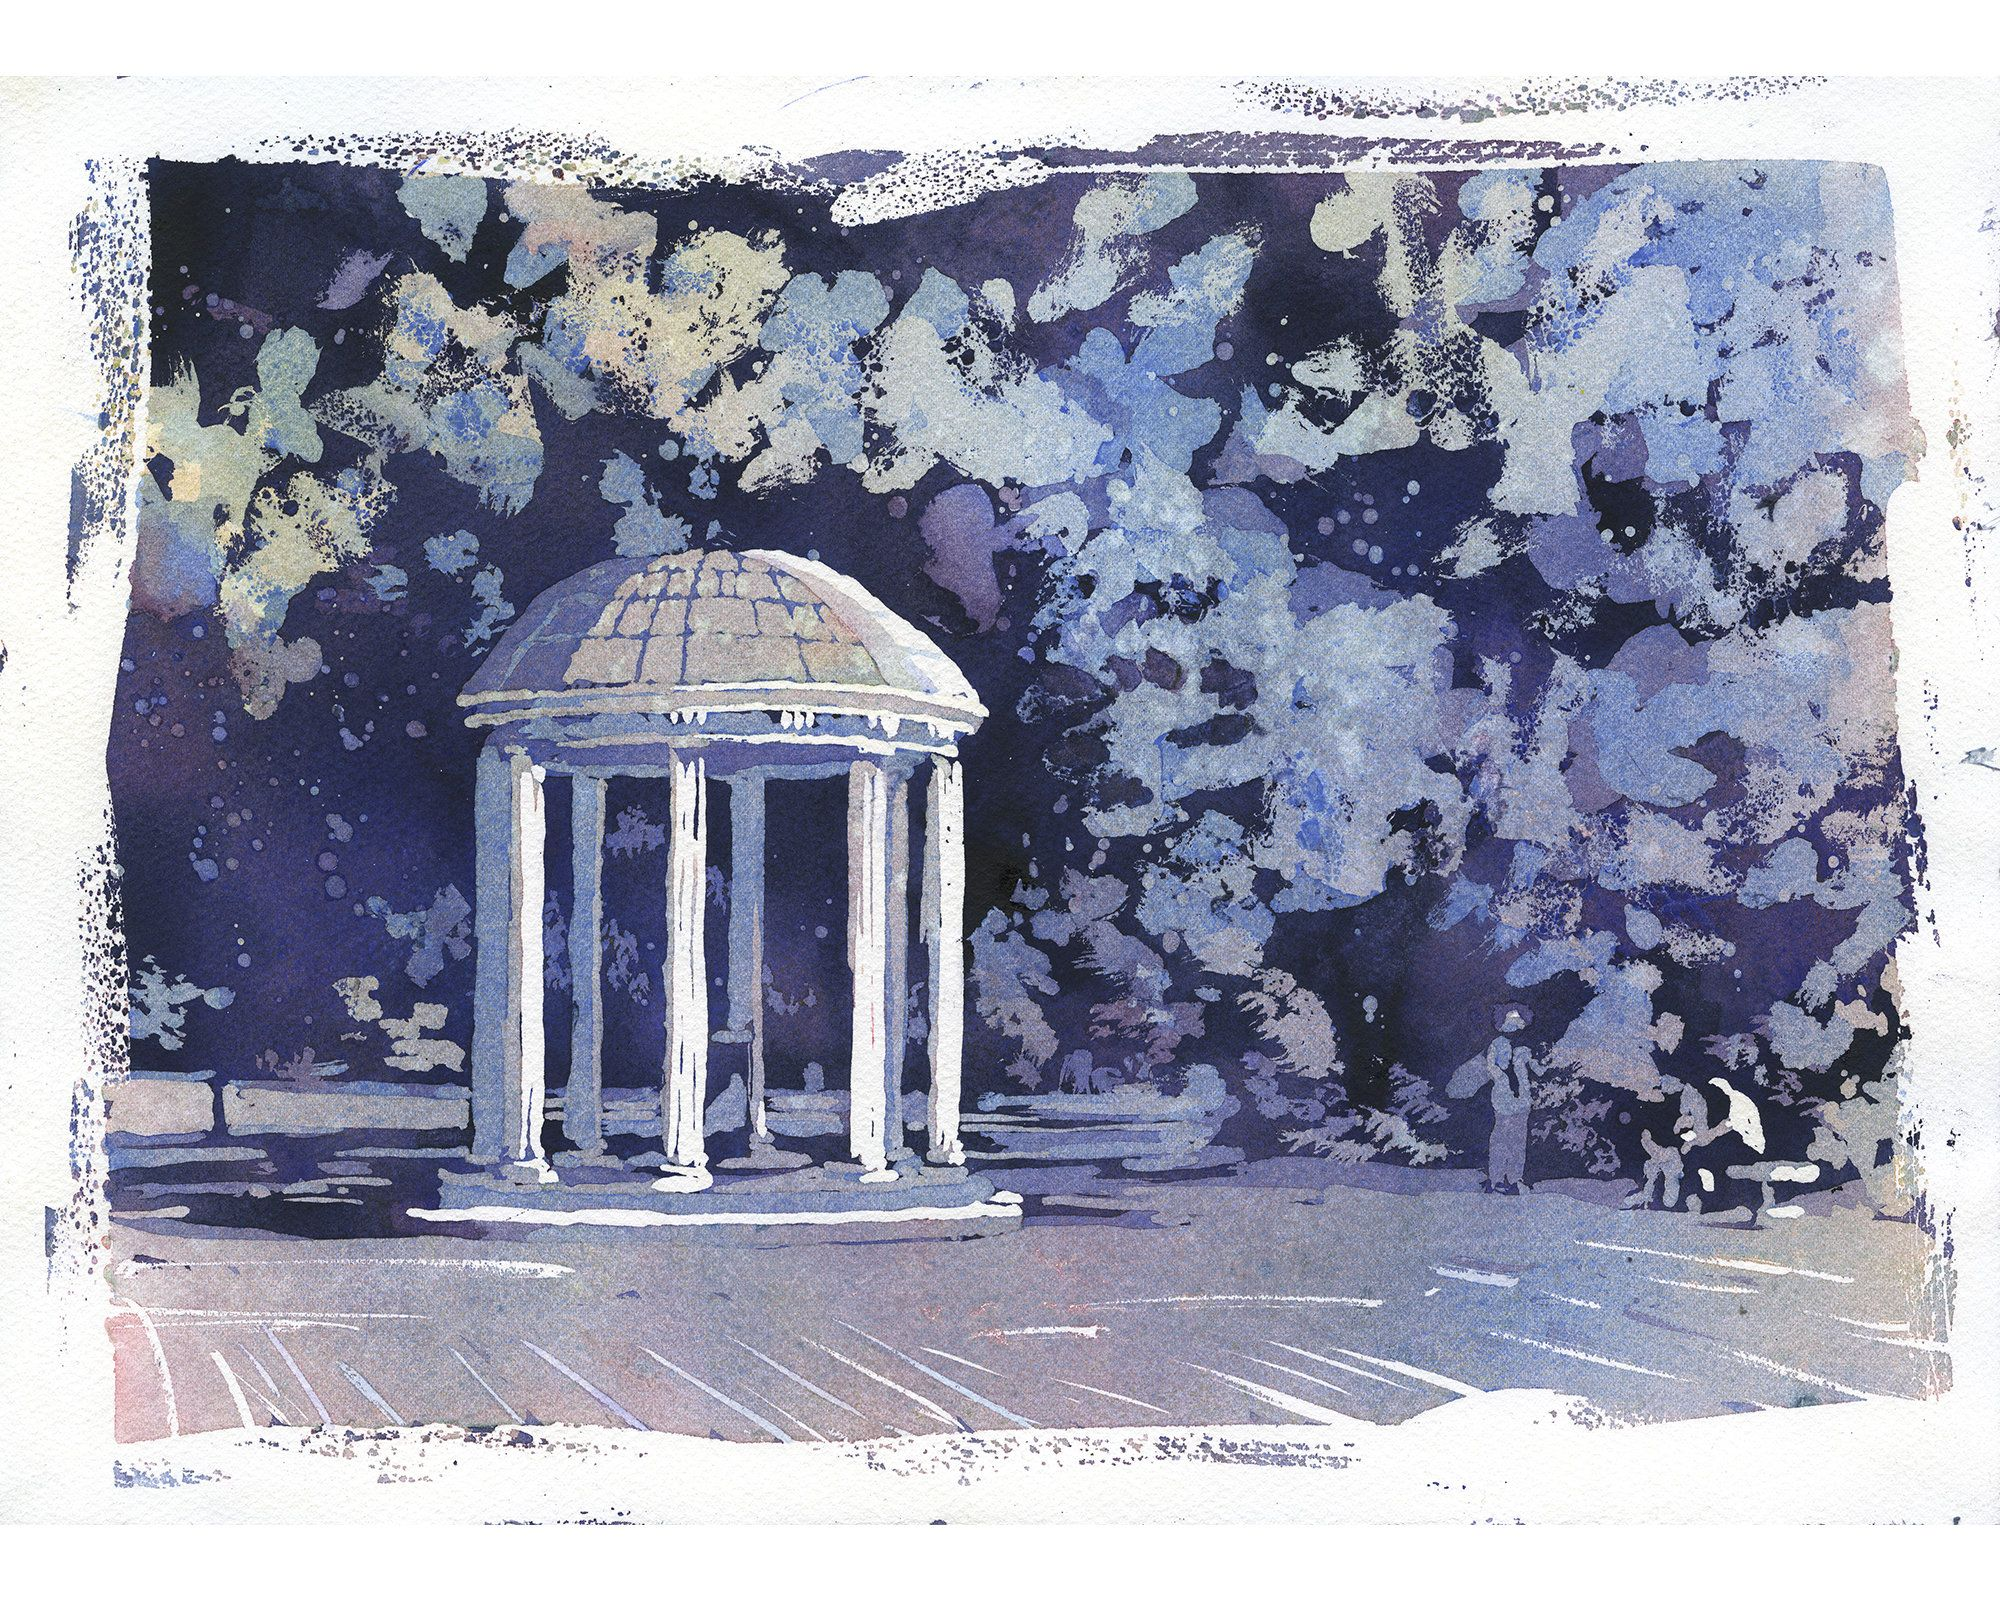 Unc Old Well Painting University Of North Carolina Old Well Fine